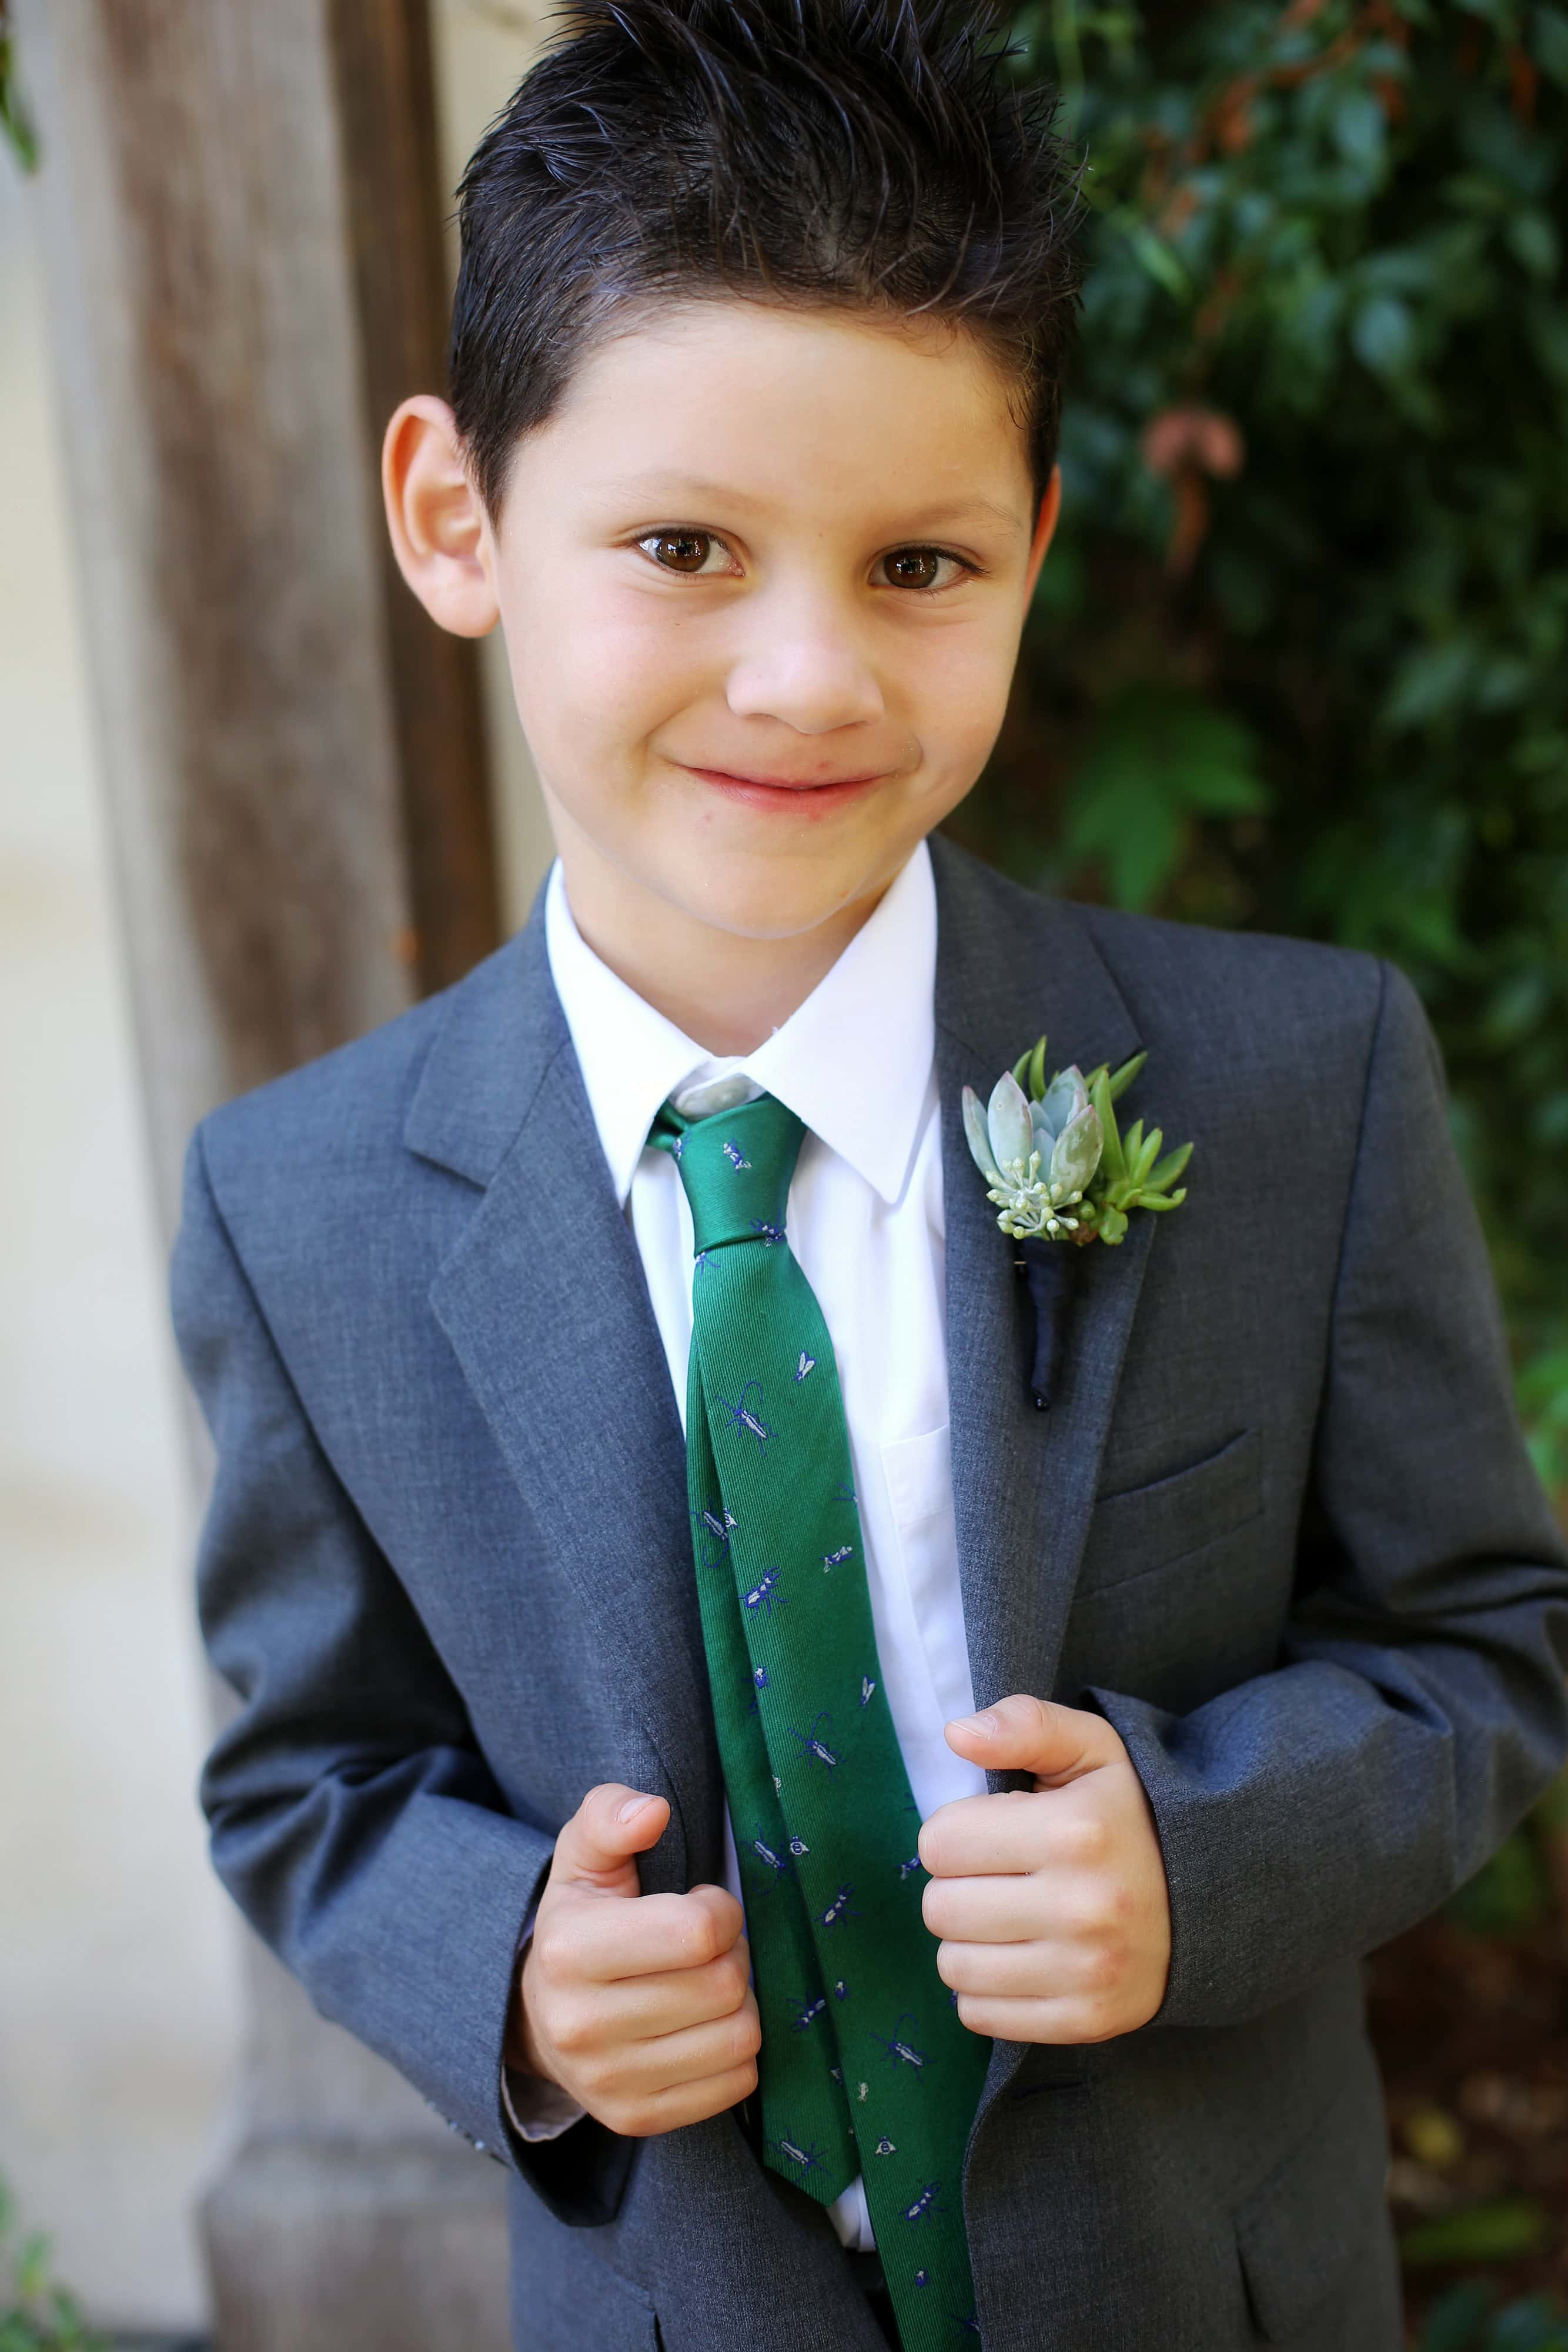 The Casitas Estate ring bearer